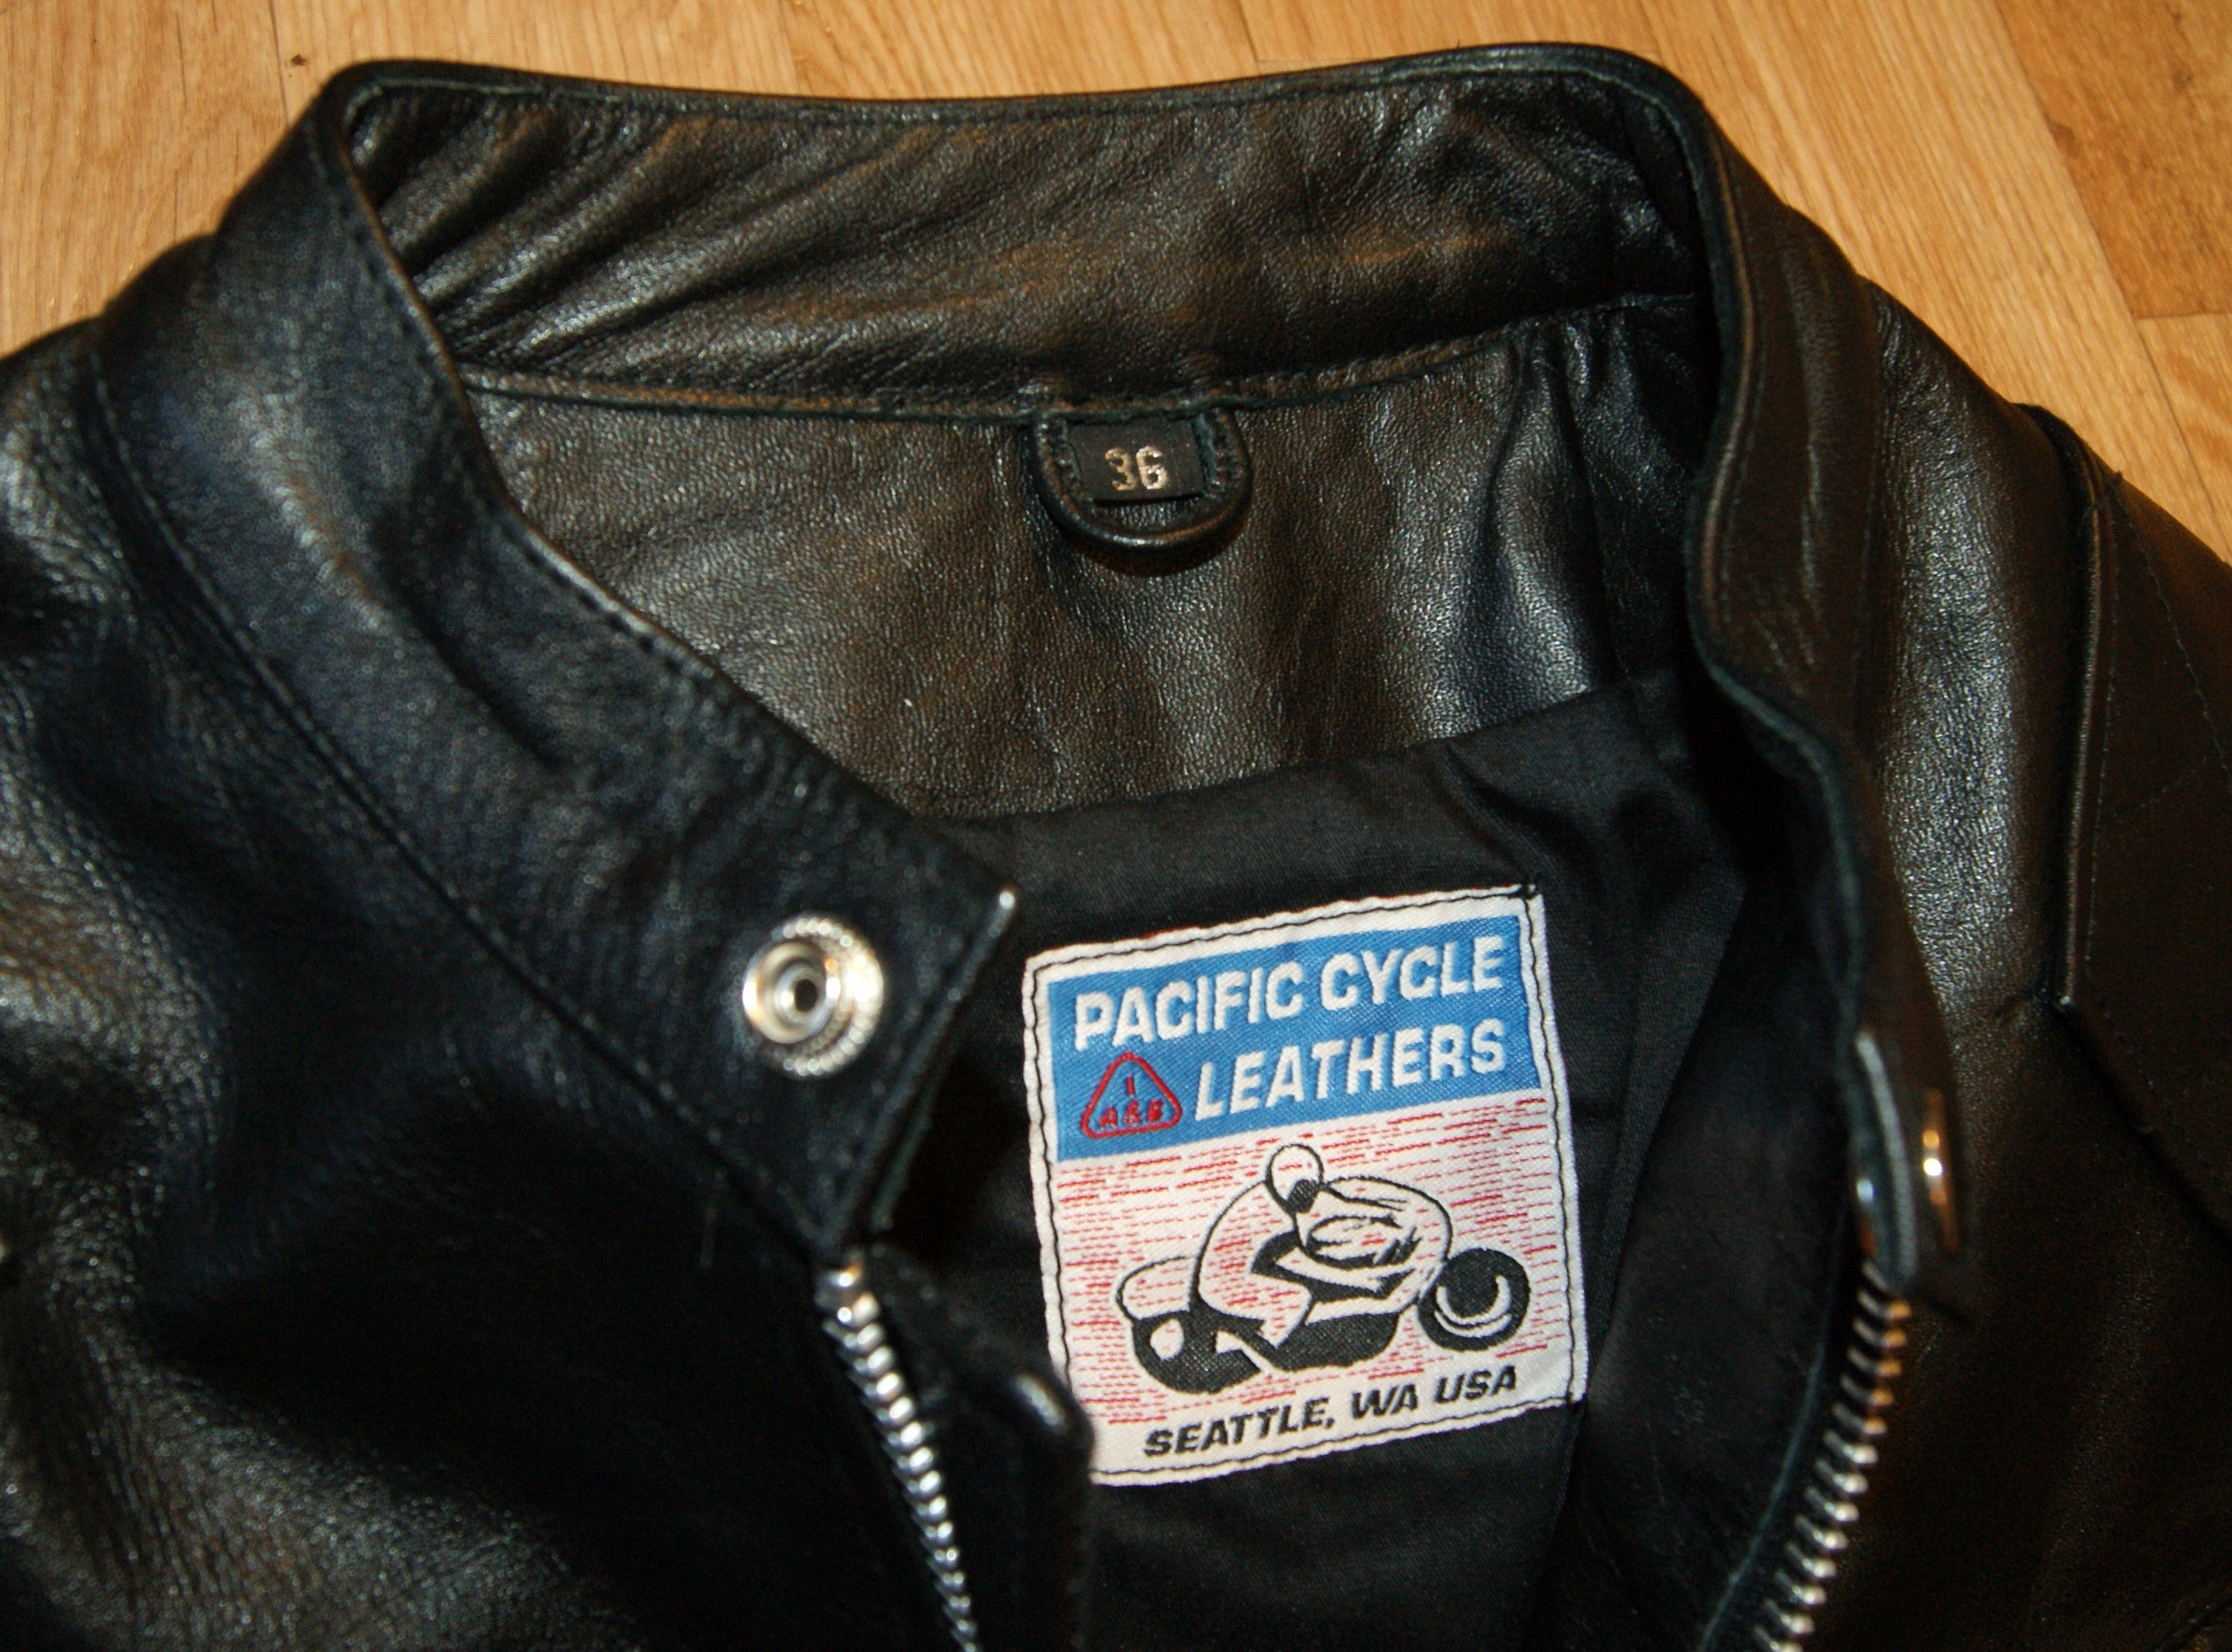 Pacific Cycle British Racer, size 36, Black Buffalo